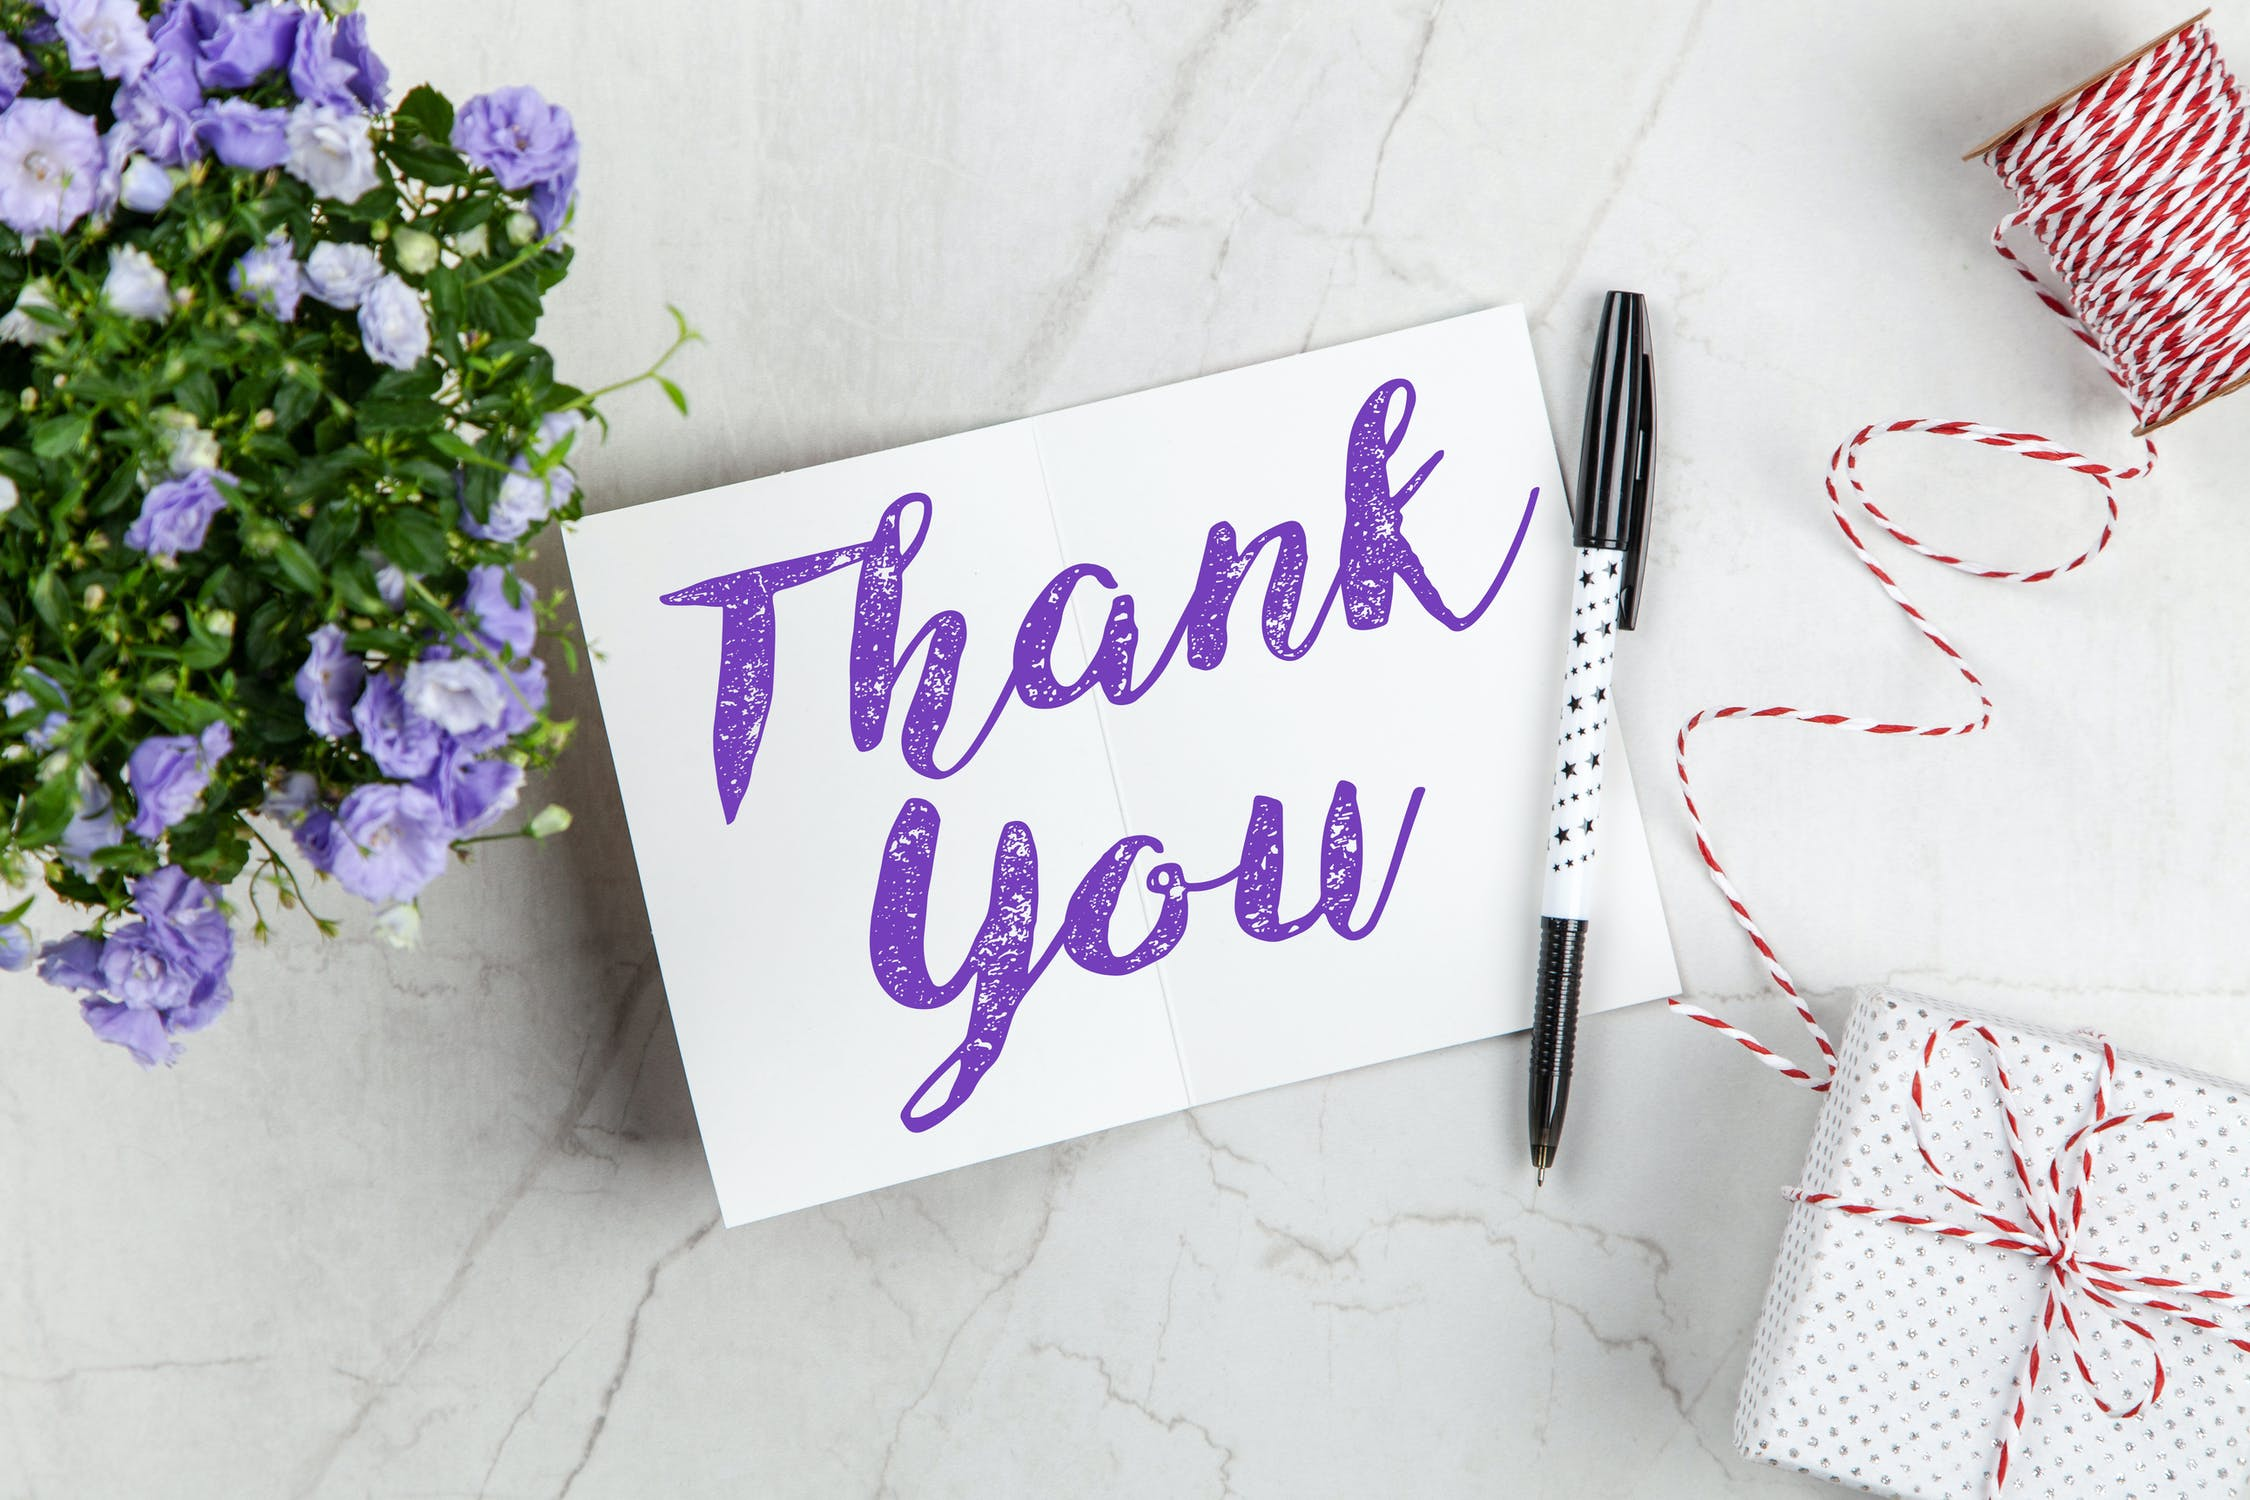 An open thank you note on a table reading 'Thank you!' in purple opulent script. Photo by pexels user Giftpundits.com. Photo used courtesy of pexels.com.